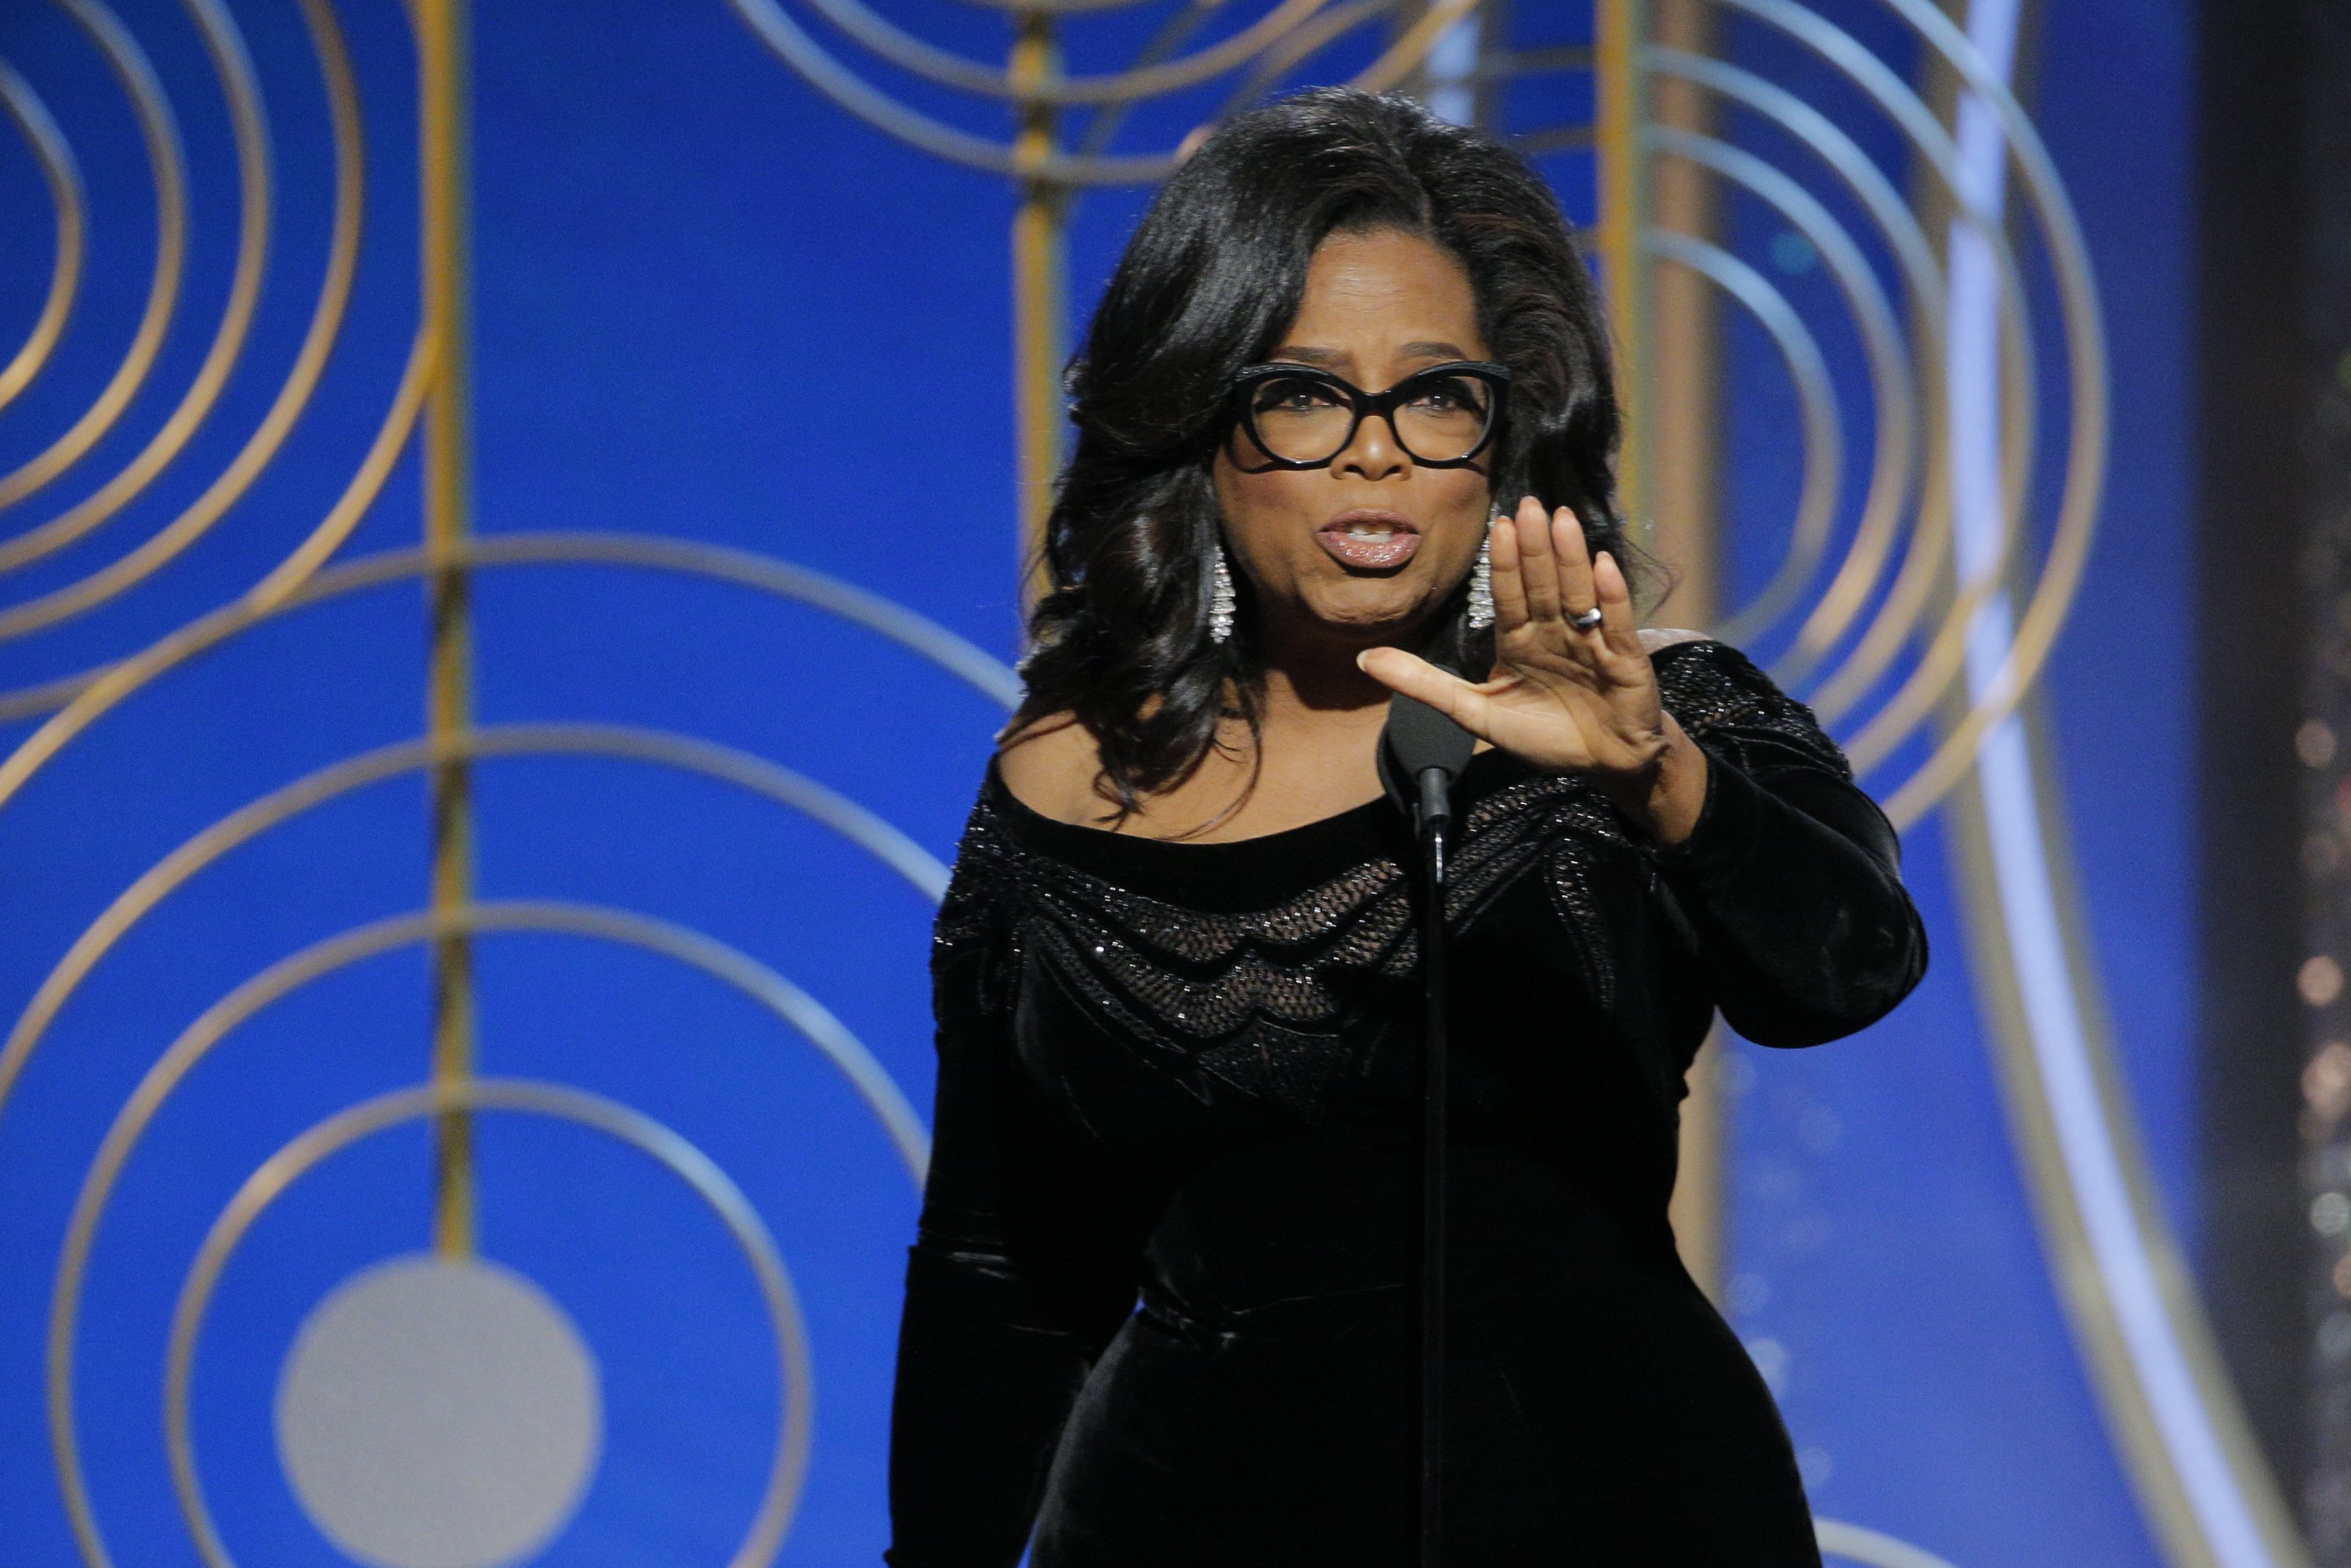 Oprah Winfrey at the 75th Annual Golden Globe Awards at The Beverly Hilton Hotel on January 7, 2018 in Beverly Hills, California. Source: Getty Images